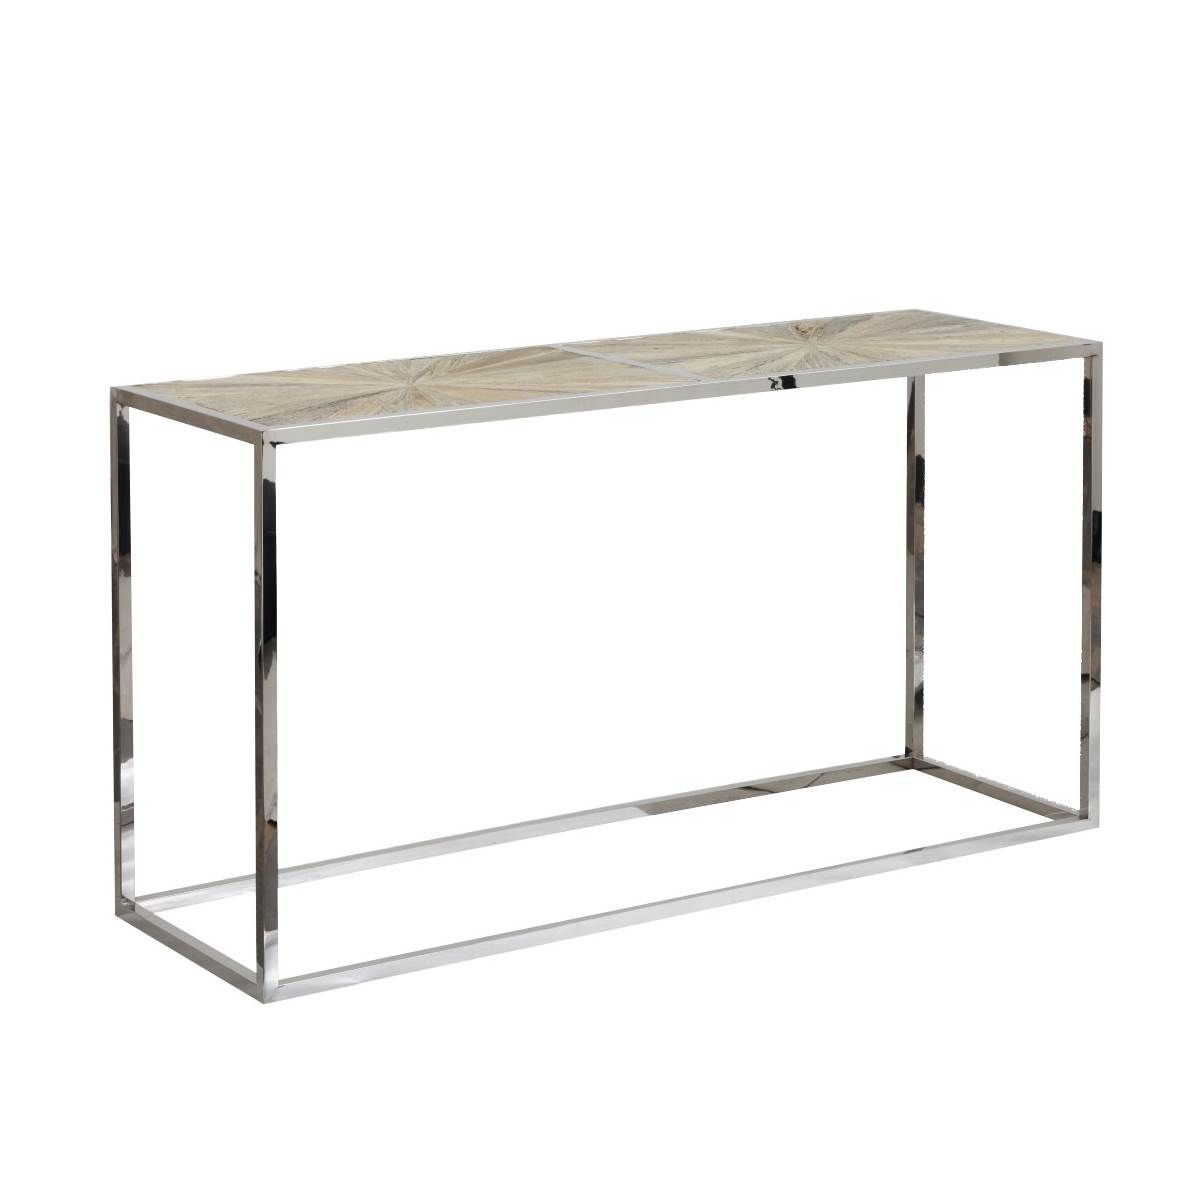 Parquet Console Table | Marshall | Pinterest In Parsons Clear Glass Top & Brass Base 48X16 Console Tables (Photo 5 of 30)